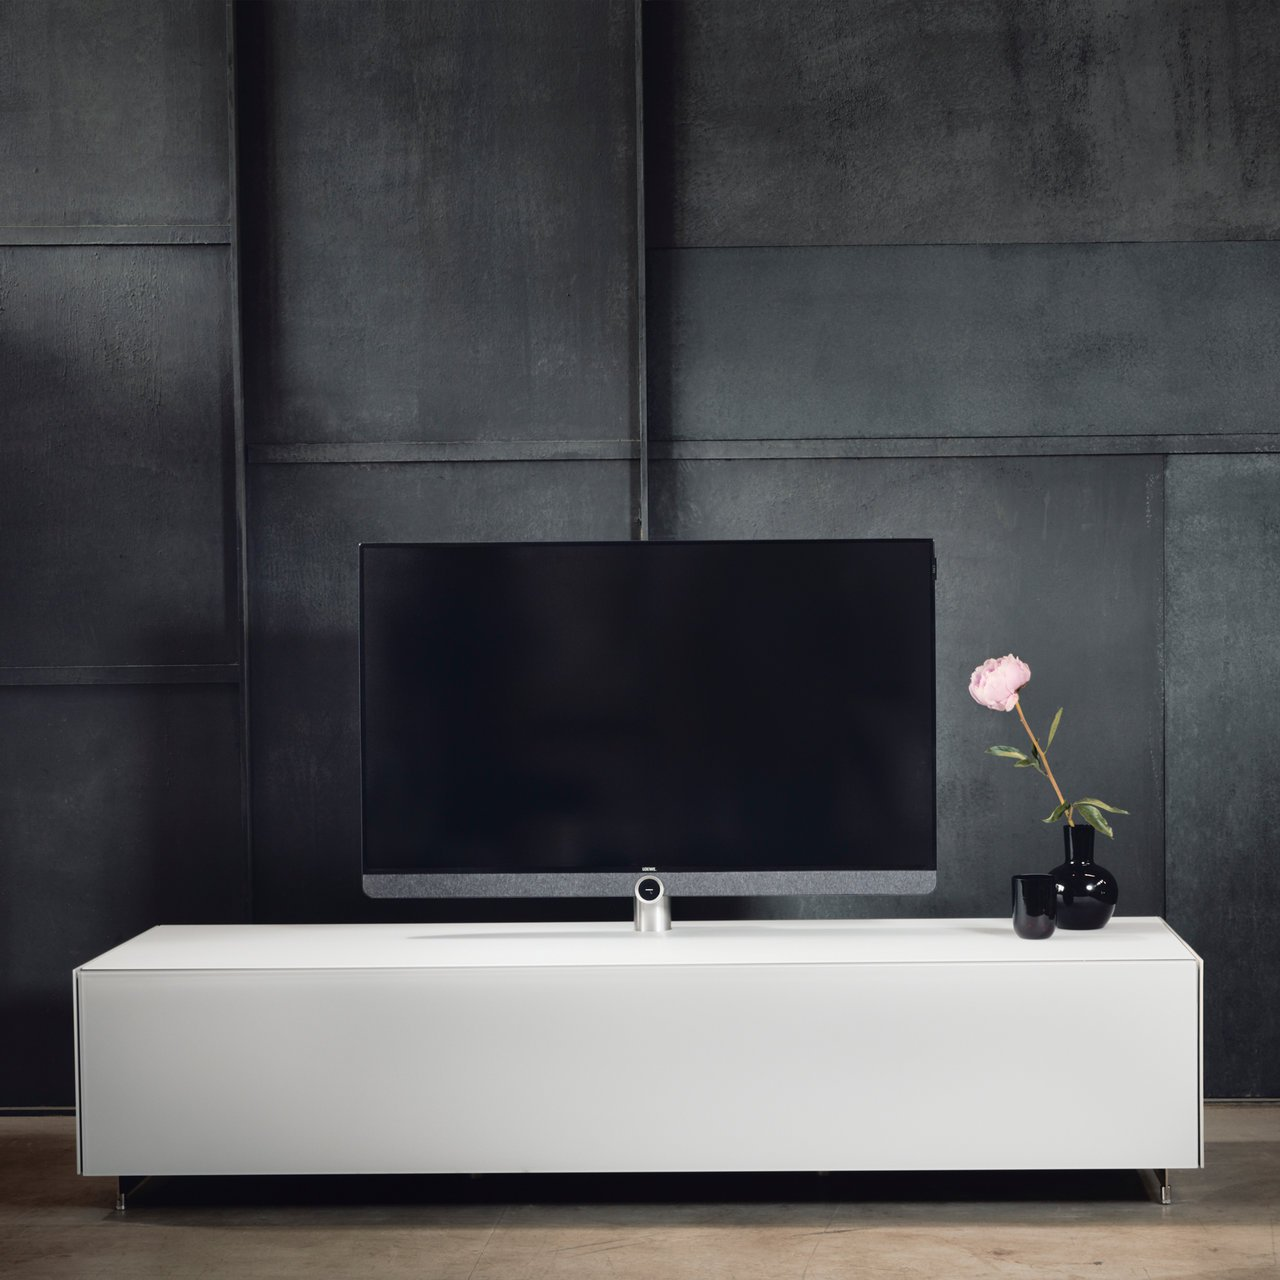 Spectral Tv Möbel Spectral Tv Unit | Tailor-made For Loewe Products | Loewe